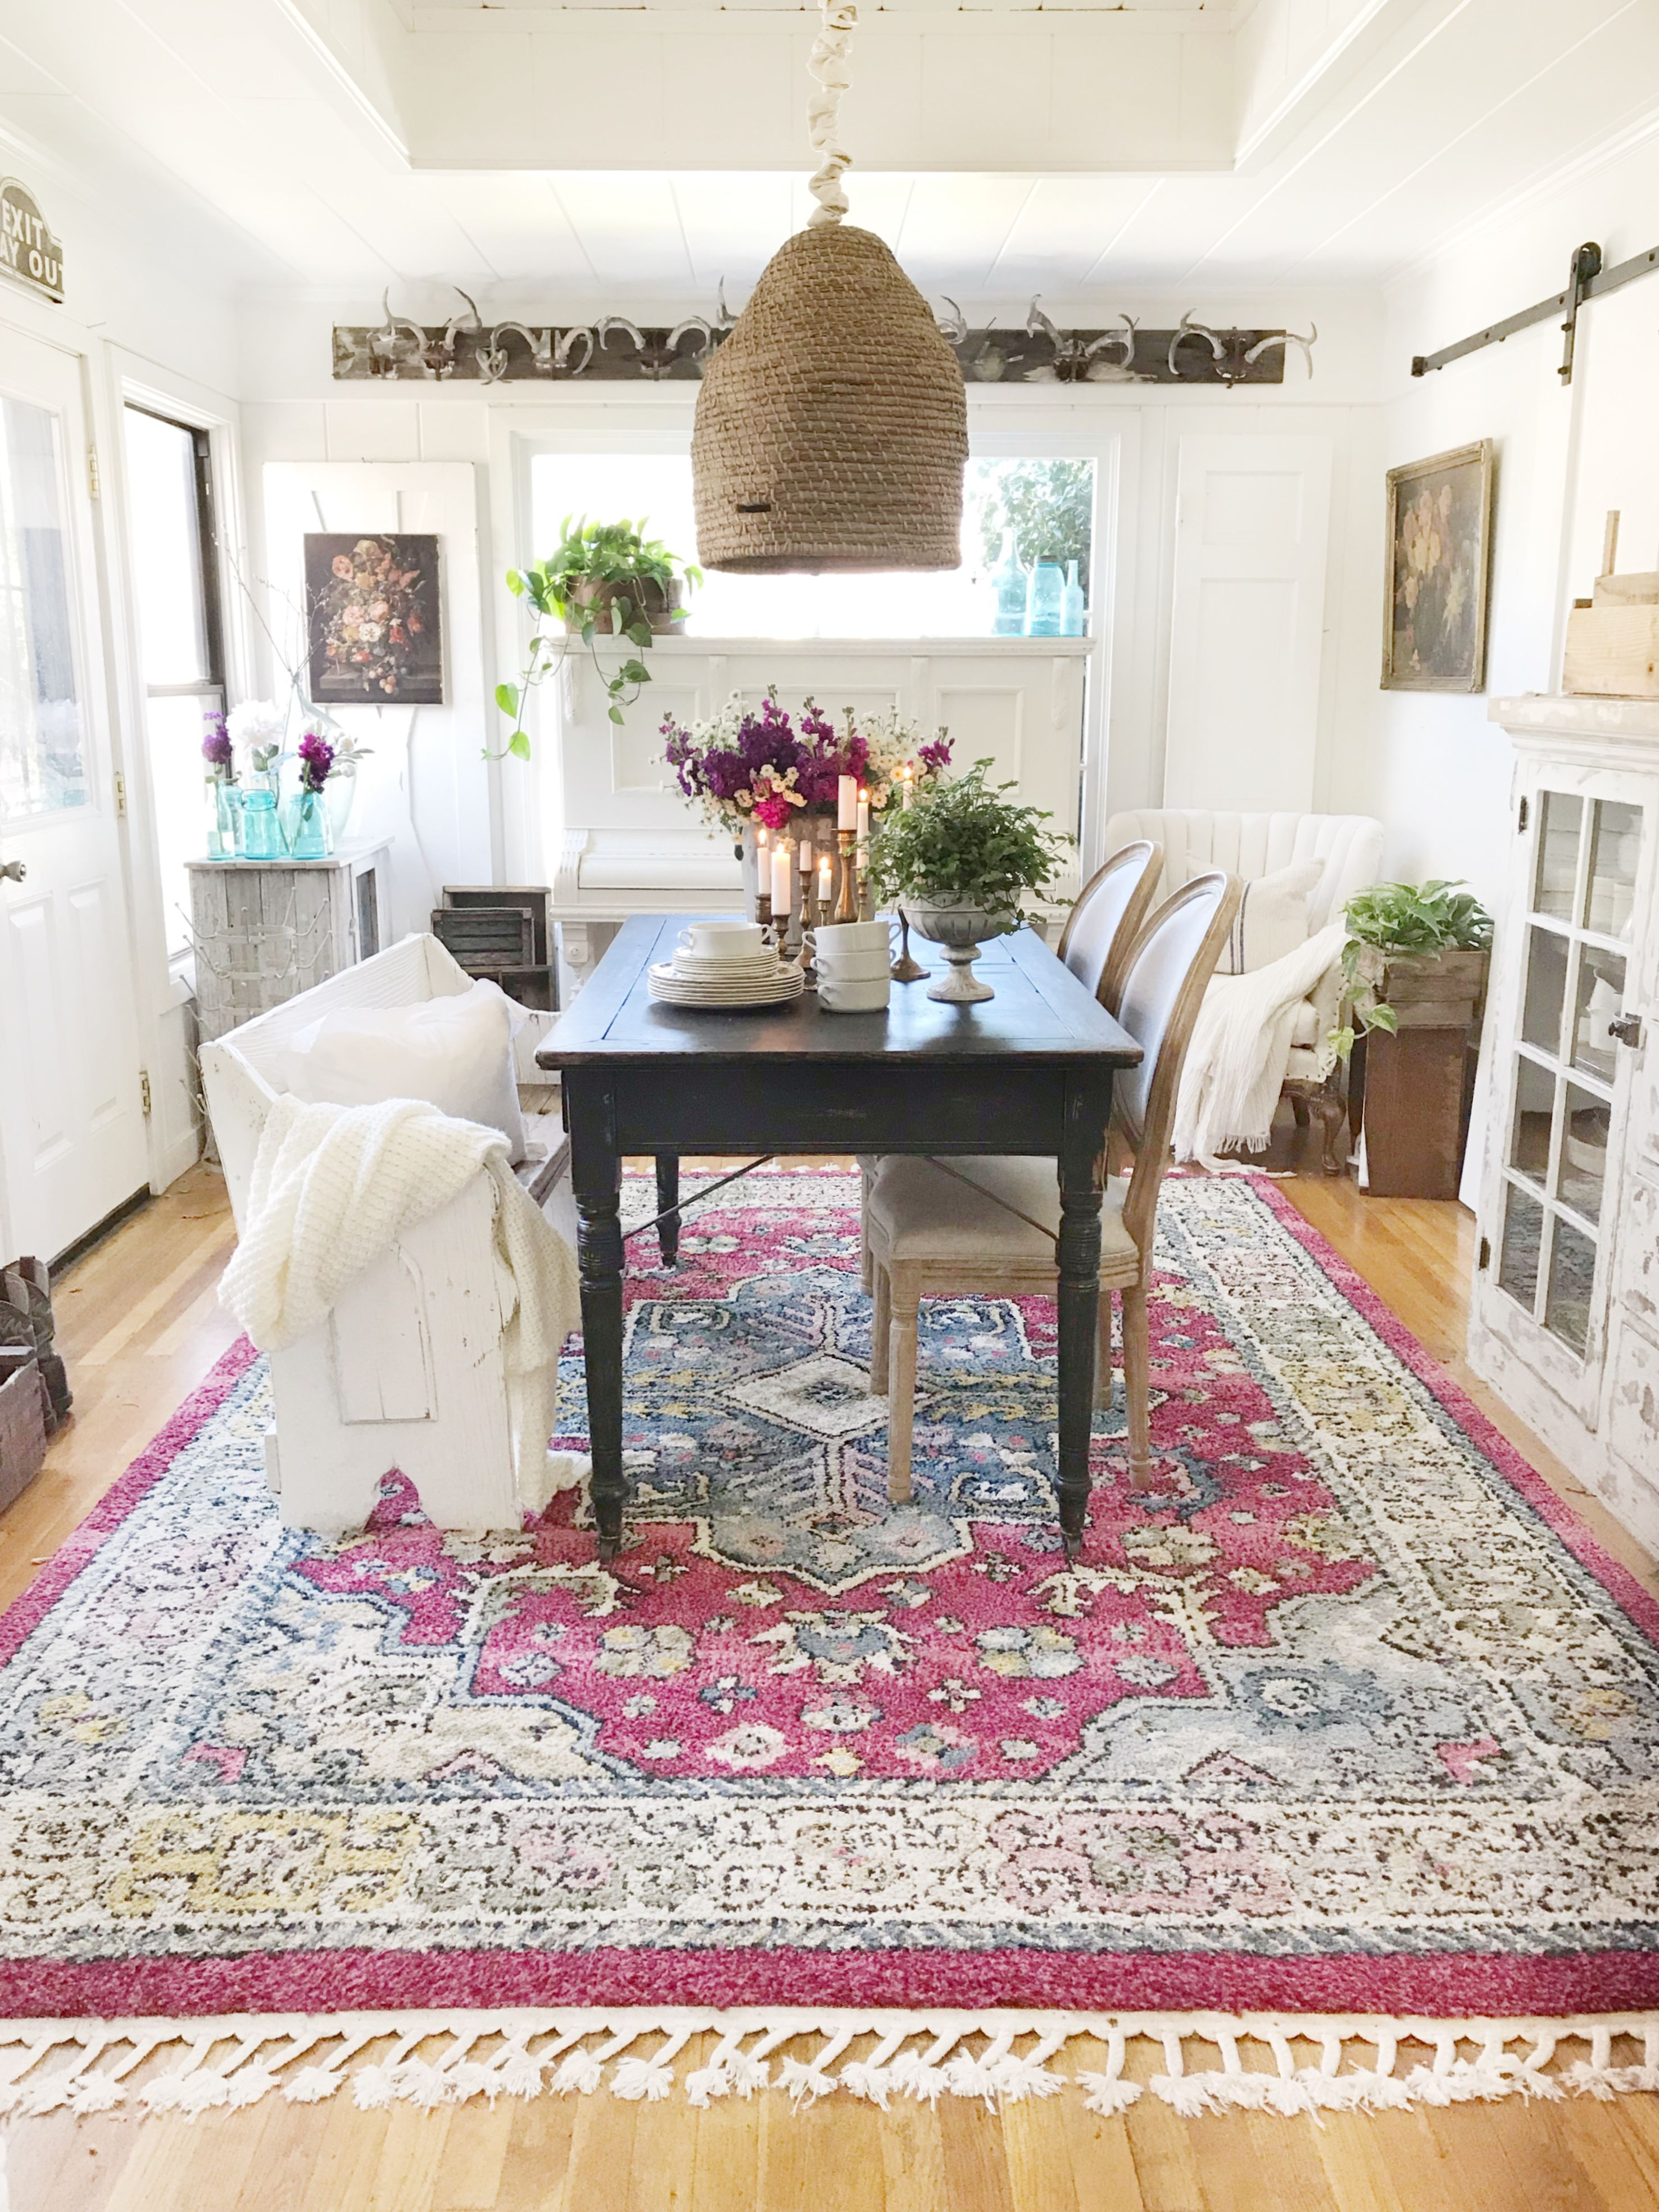 Red Rugs Fringed Boho In Toni Marianna S Dining Room